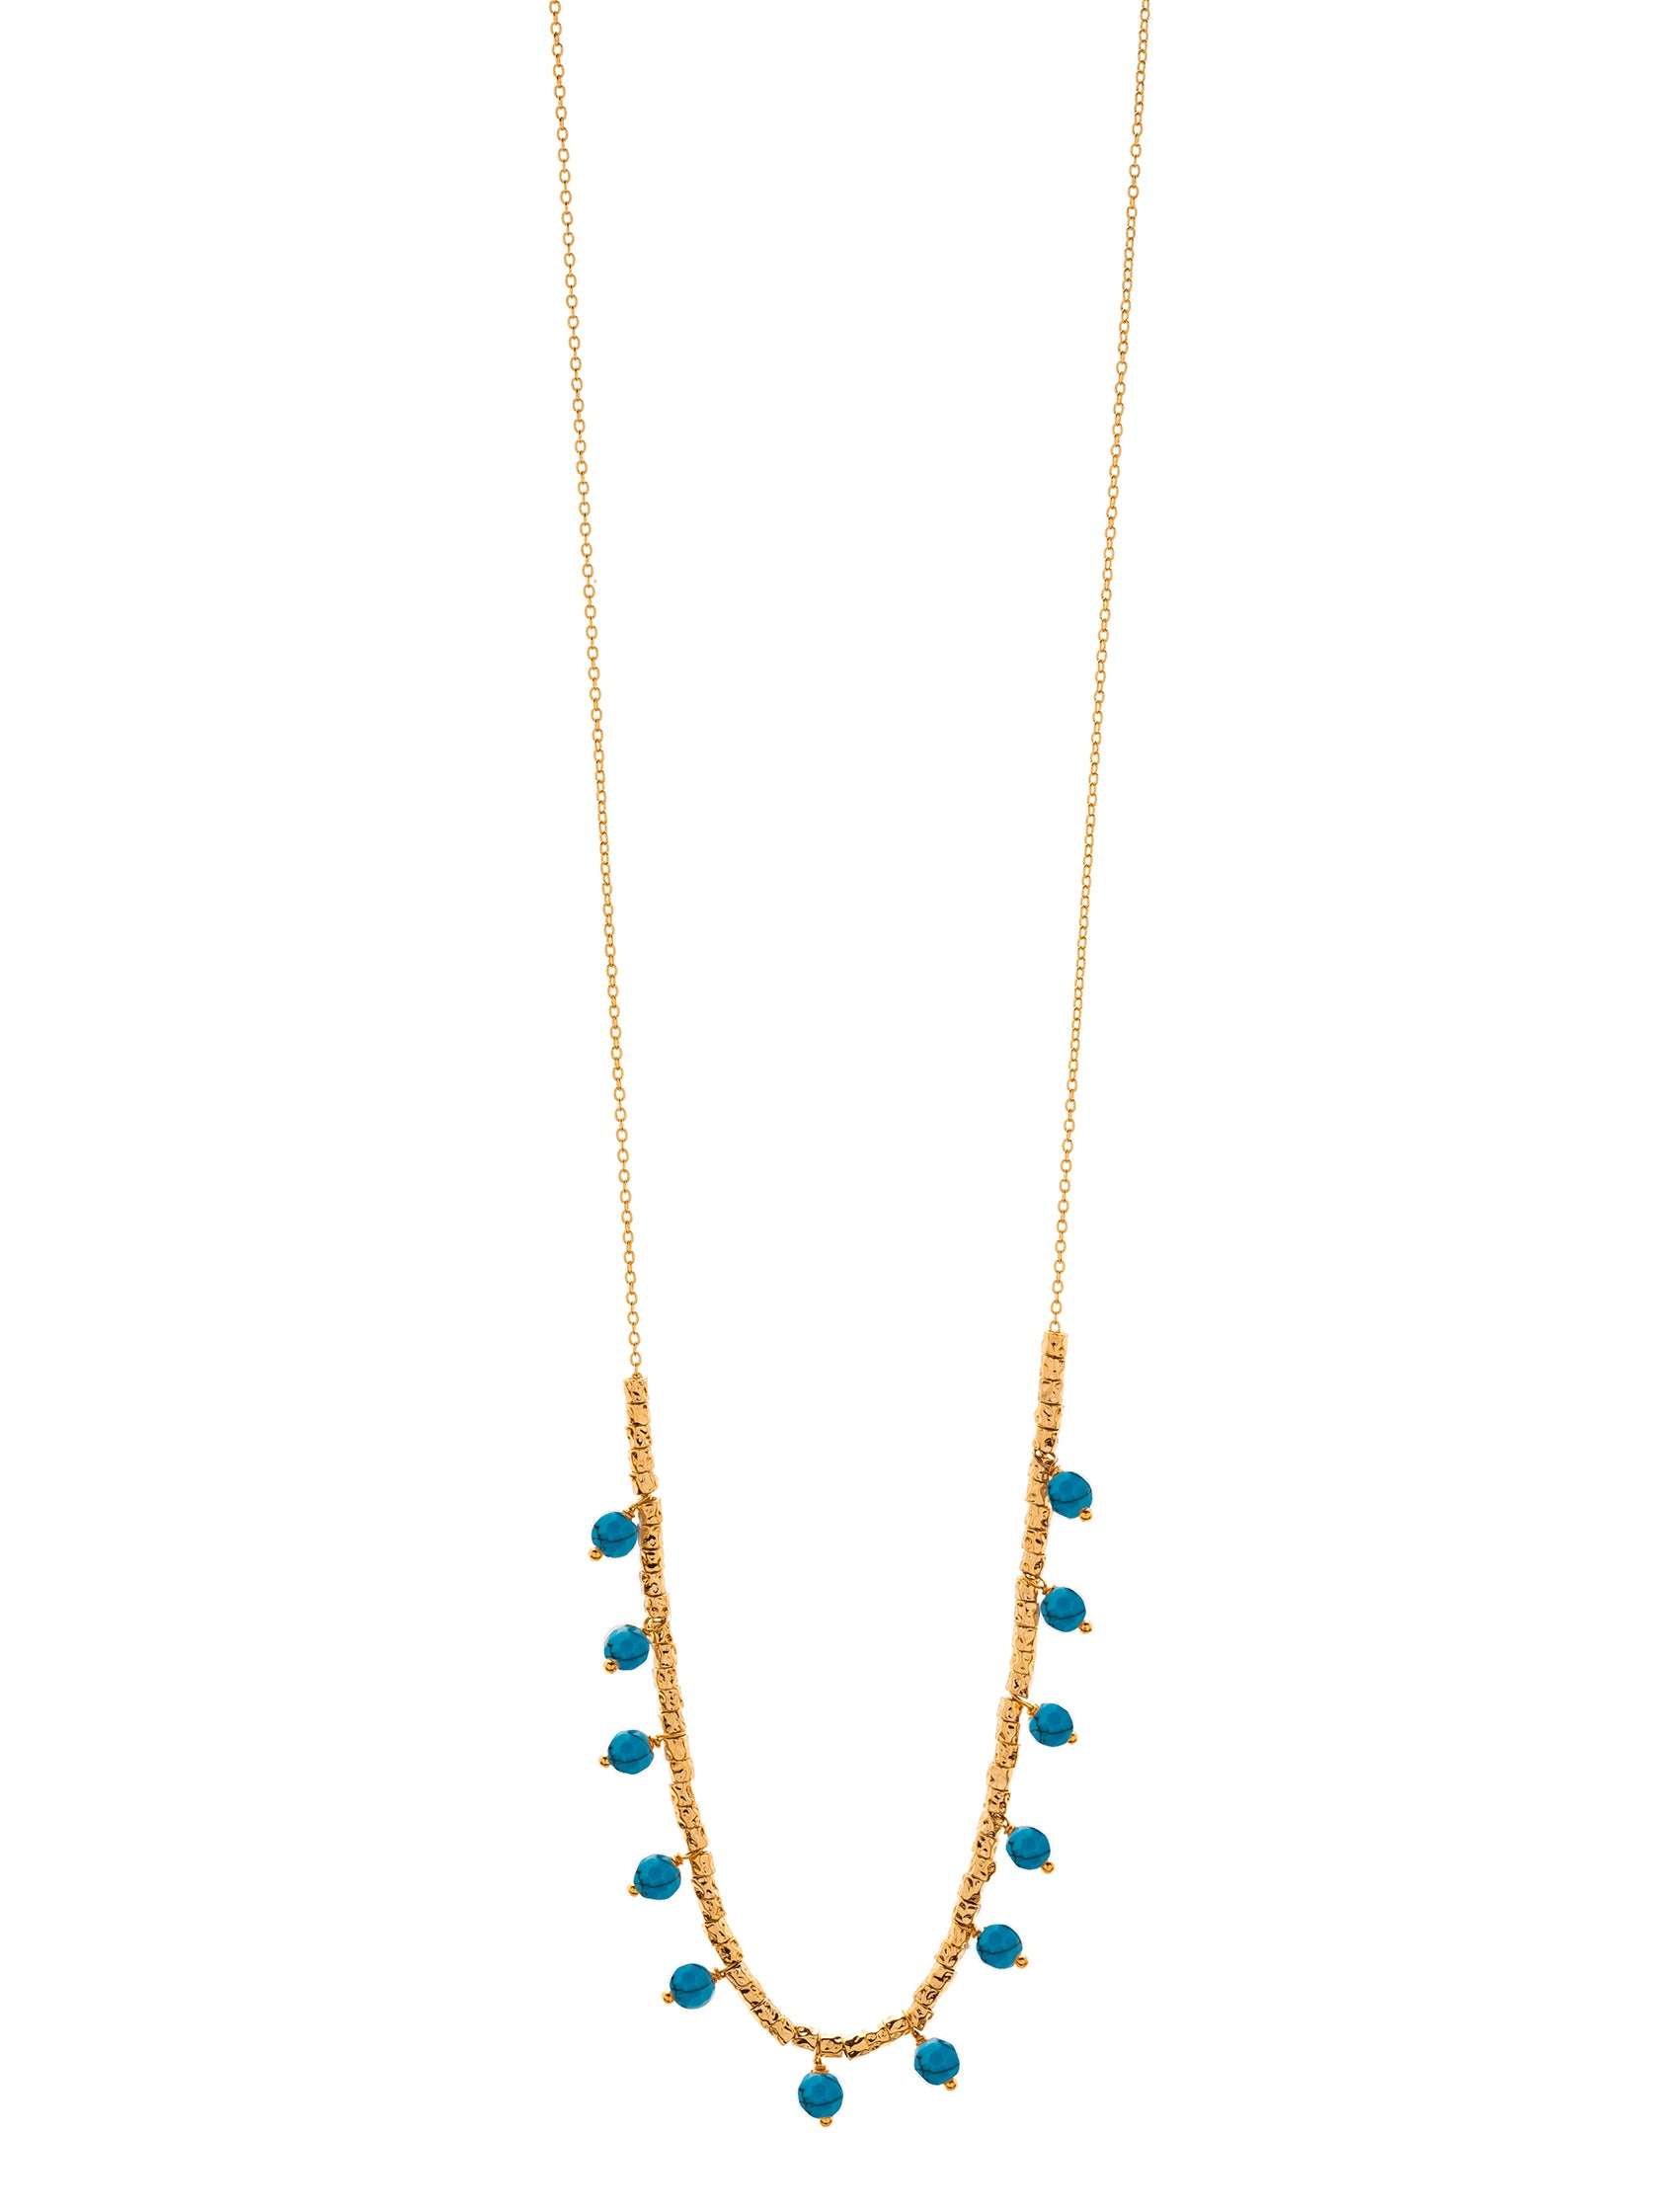 Women wearing a necklace rental from Gorjana called Palisades Turquoise Versatile Necklace